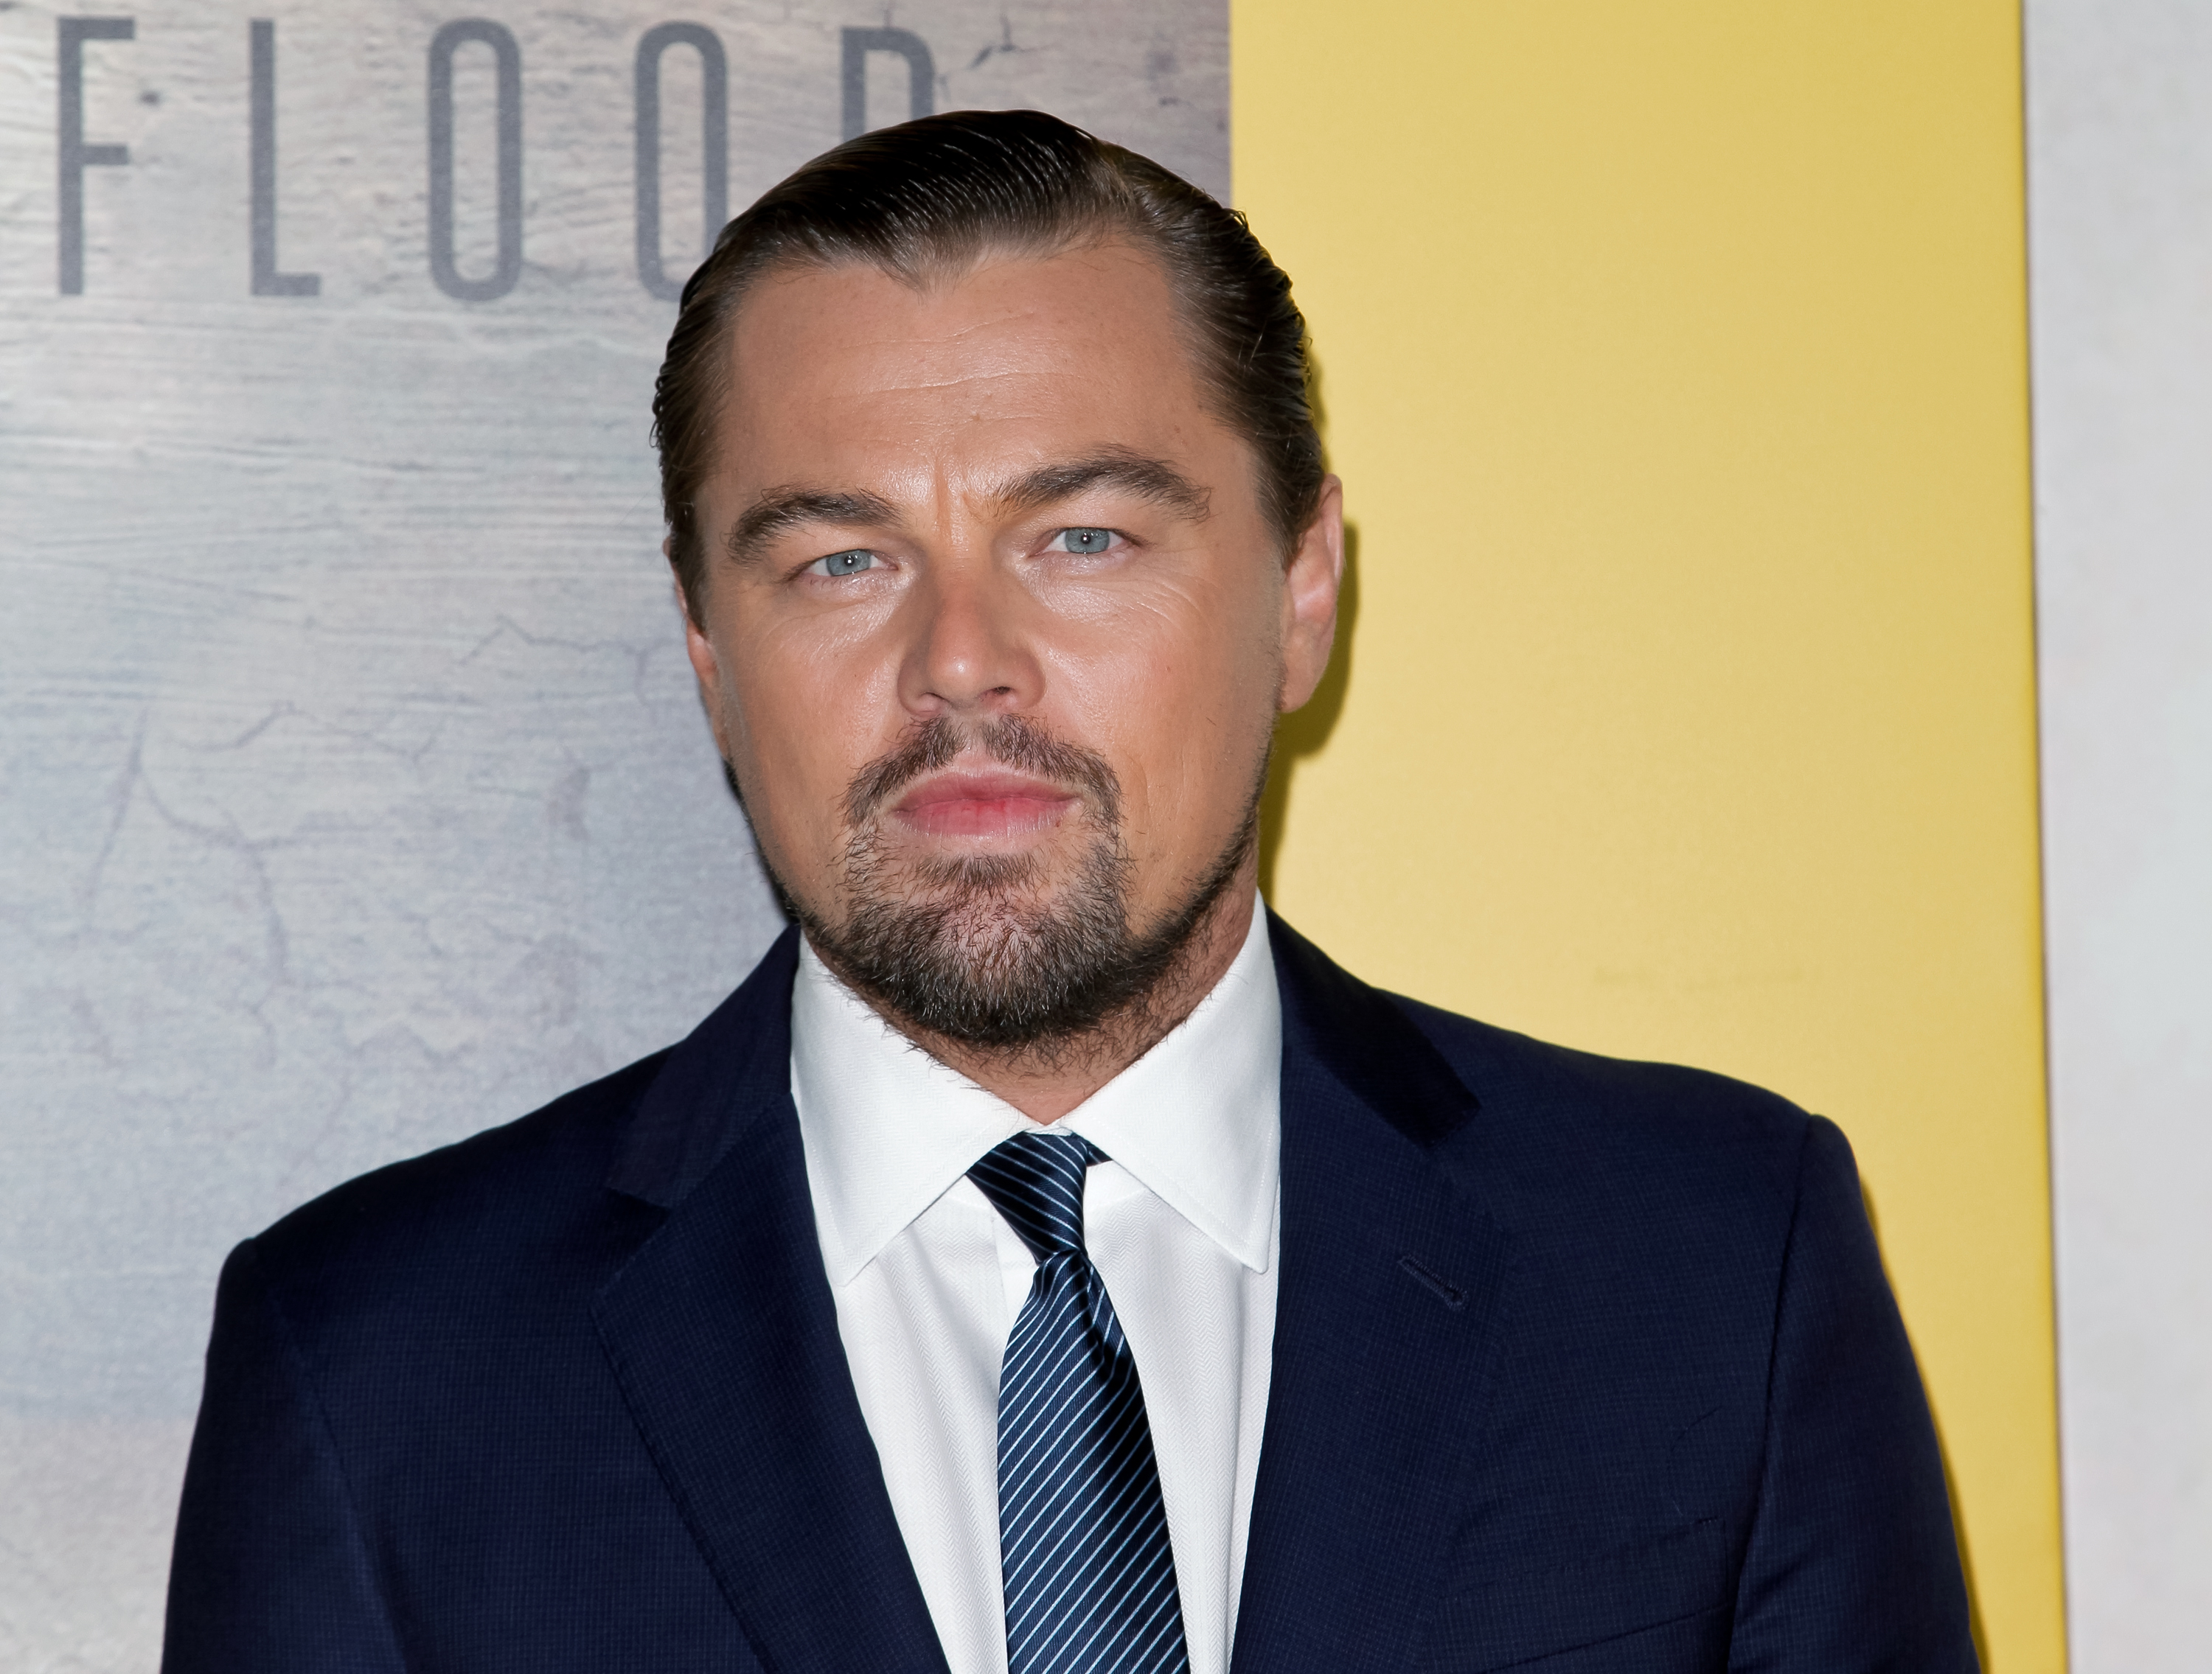 Leonardo DiCaprio attends the Screening of National Geographic Channel's 'Before The Flood' on October 24, 2016 in Los Angeles, California.